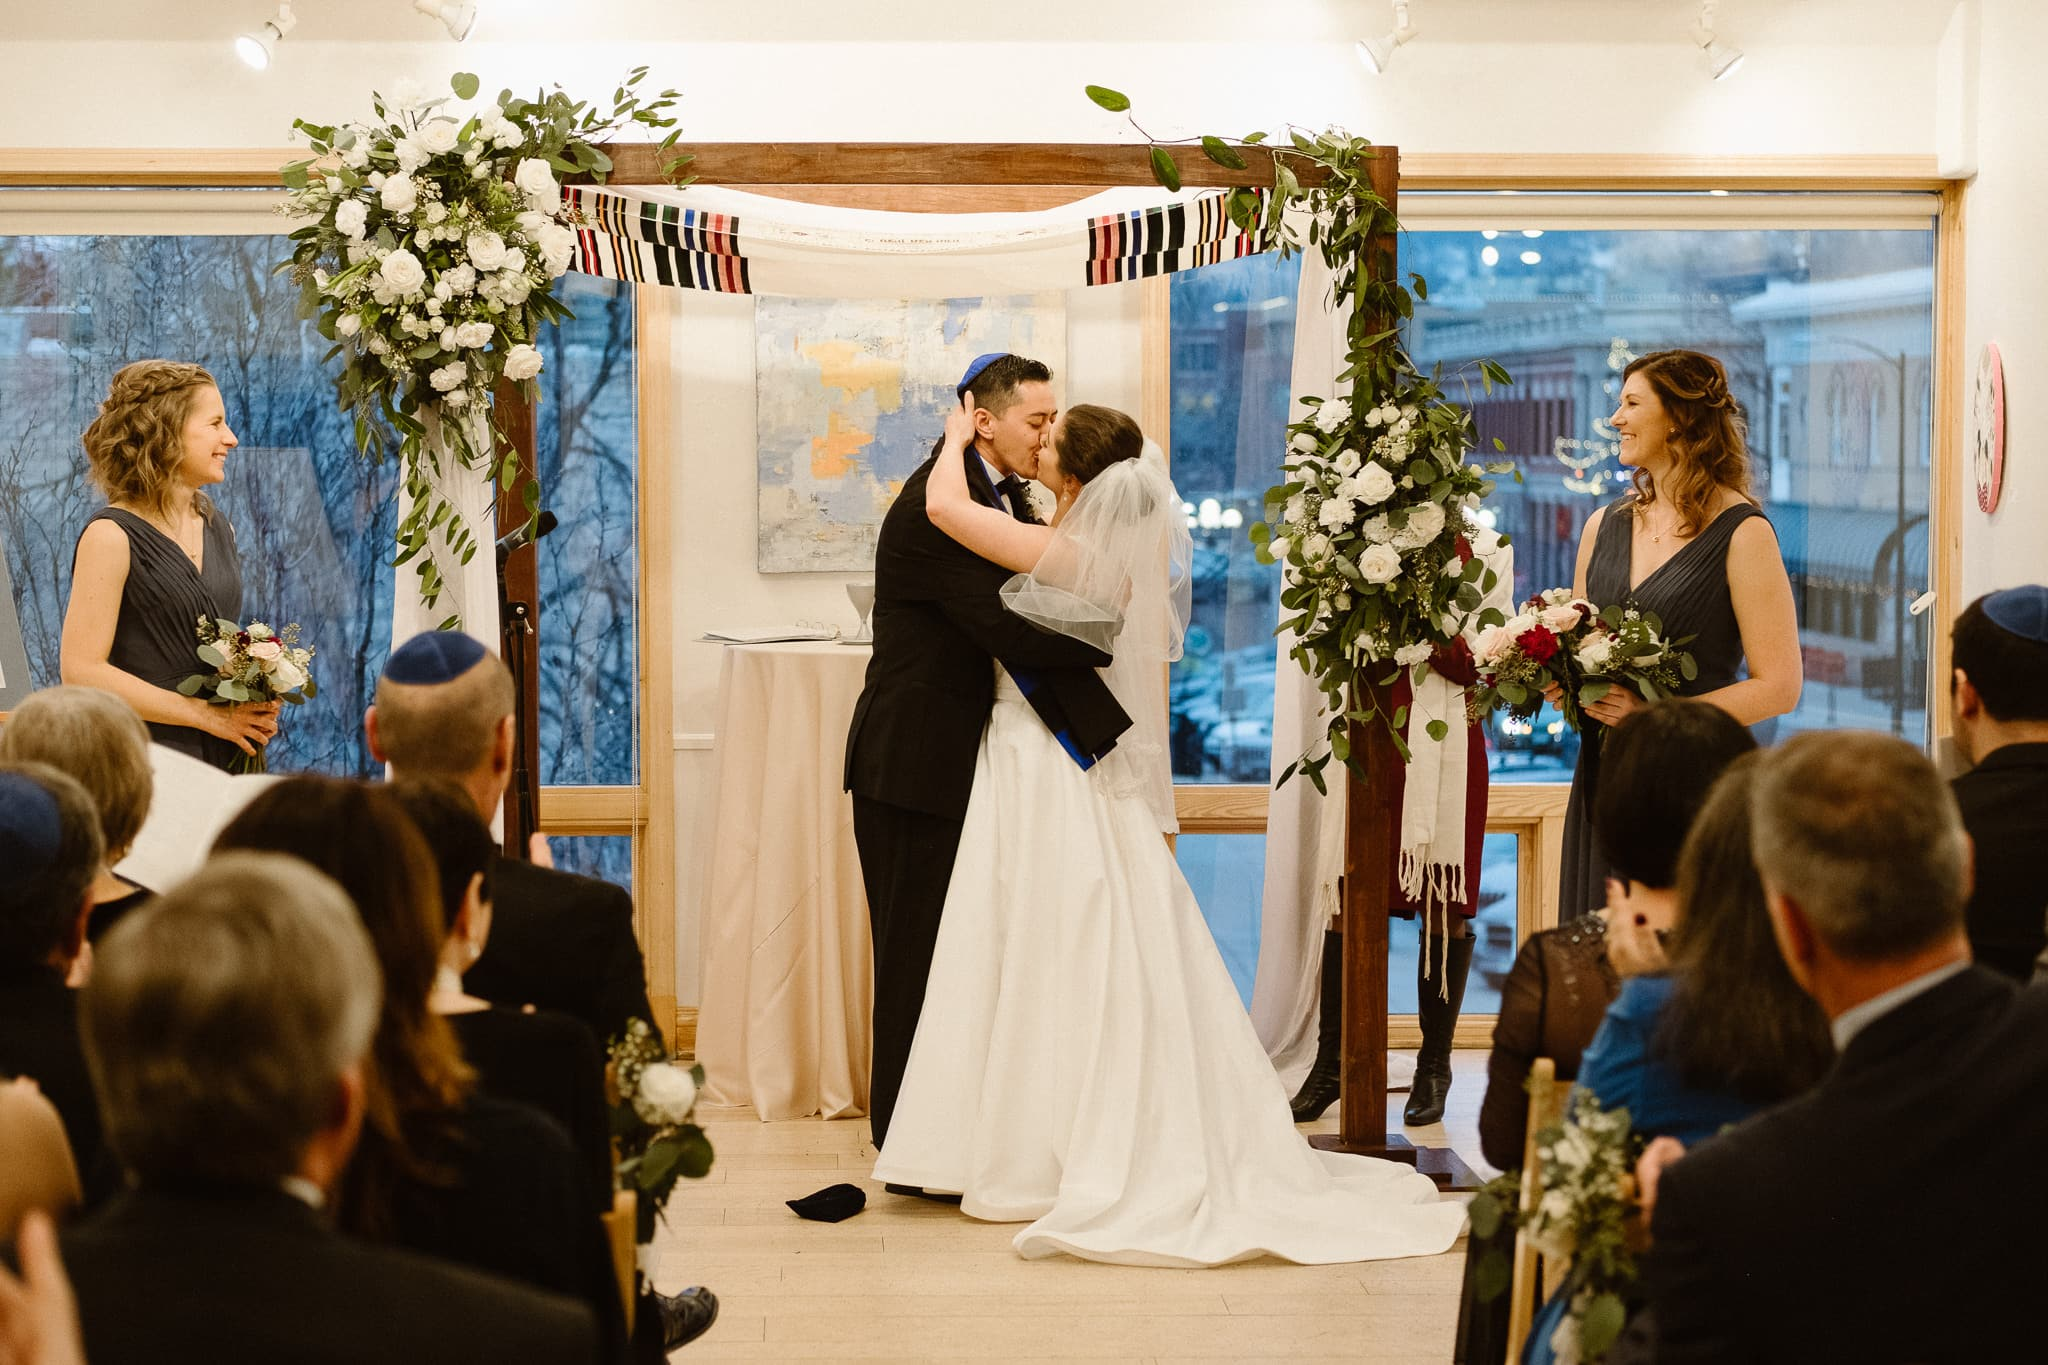 Rembrandt Yard wedding photographer, Boulder wedding photographer, Colorado Jewish wedding ceremony, bride and groom first kiss